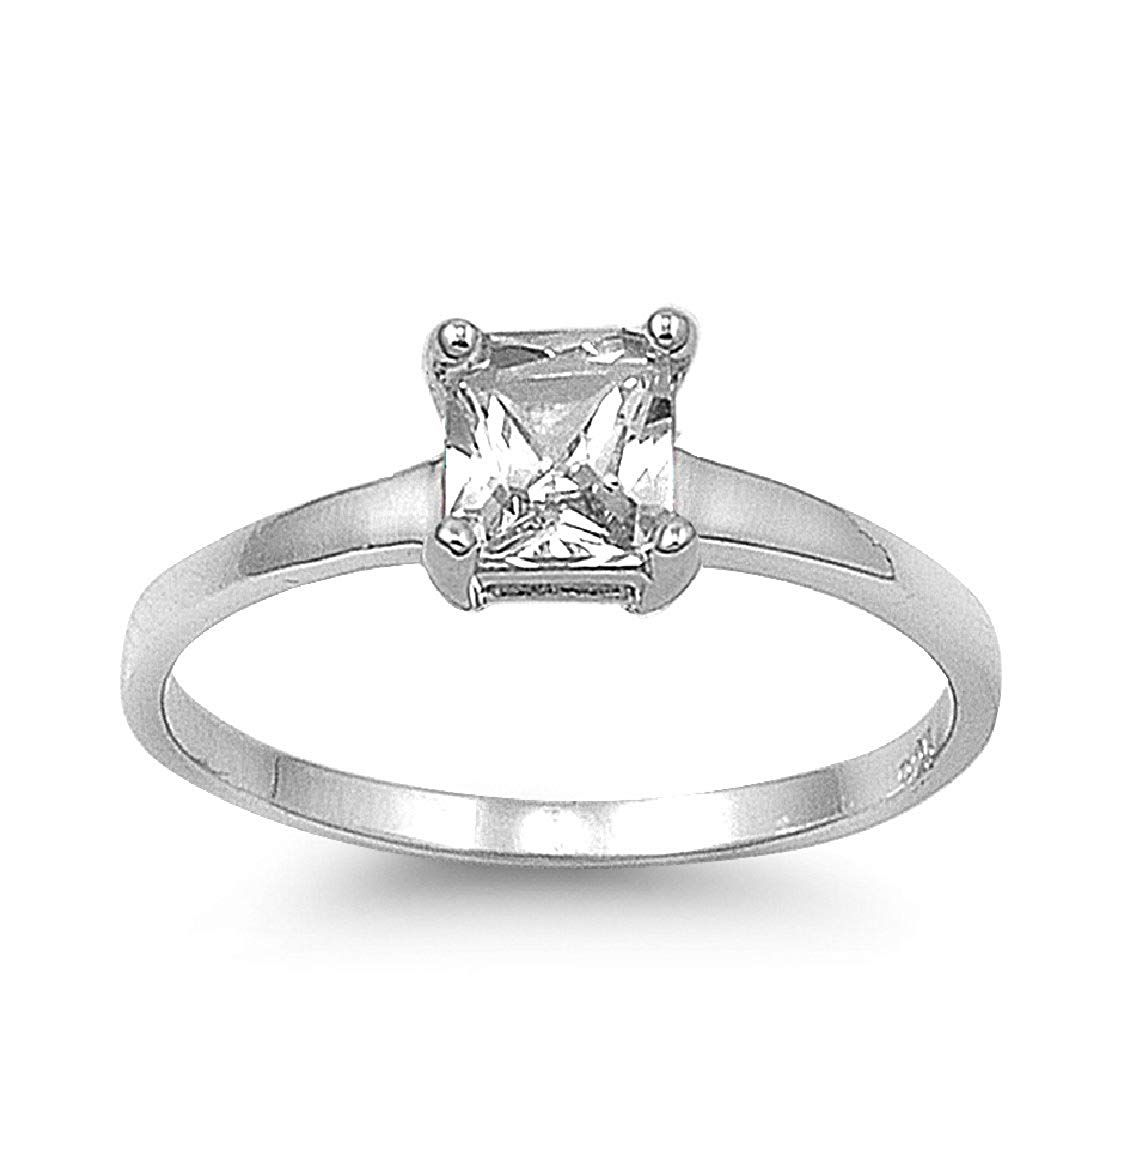 CloseoutWarehouse Rhodium Plated Sterling Silver Intertwined Heart Ring